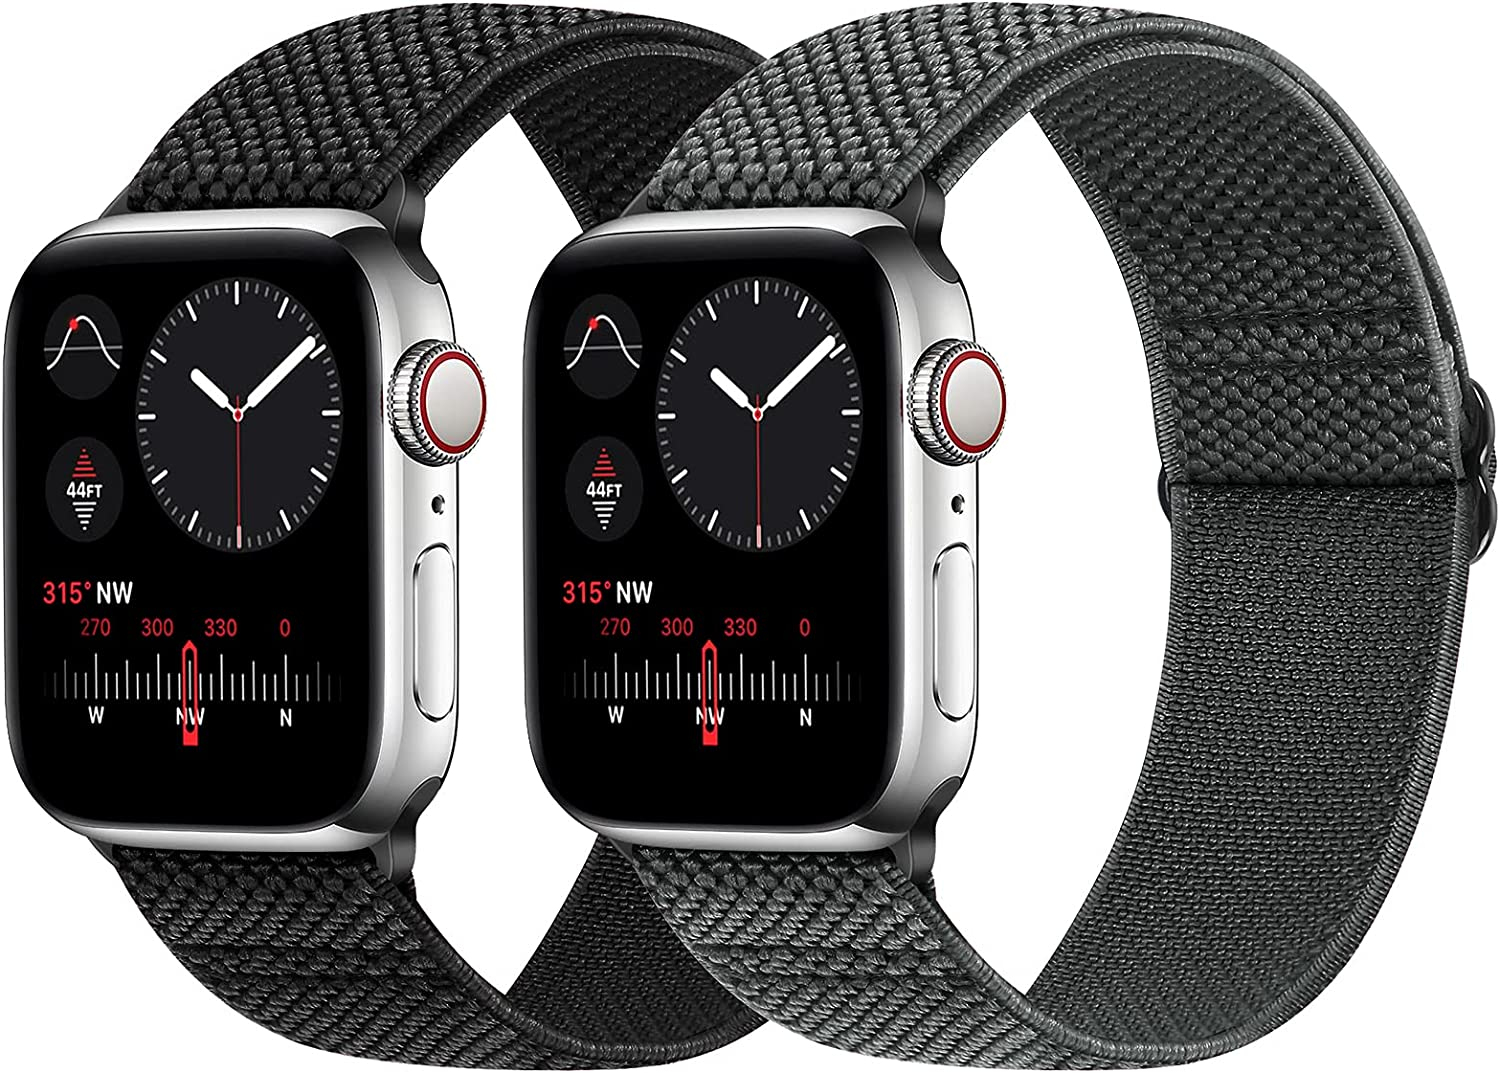 WNIPH Stretchy Nylon Solo Loop Bands Compatible with Apple Watch 44mm/42mm, Adjustable Elastic Braided Sports Replacement Wristband for iWatch Series 6/5/4/3/2/1 SE Women Men (42mm/44mm, Black+Gray)